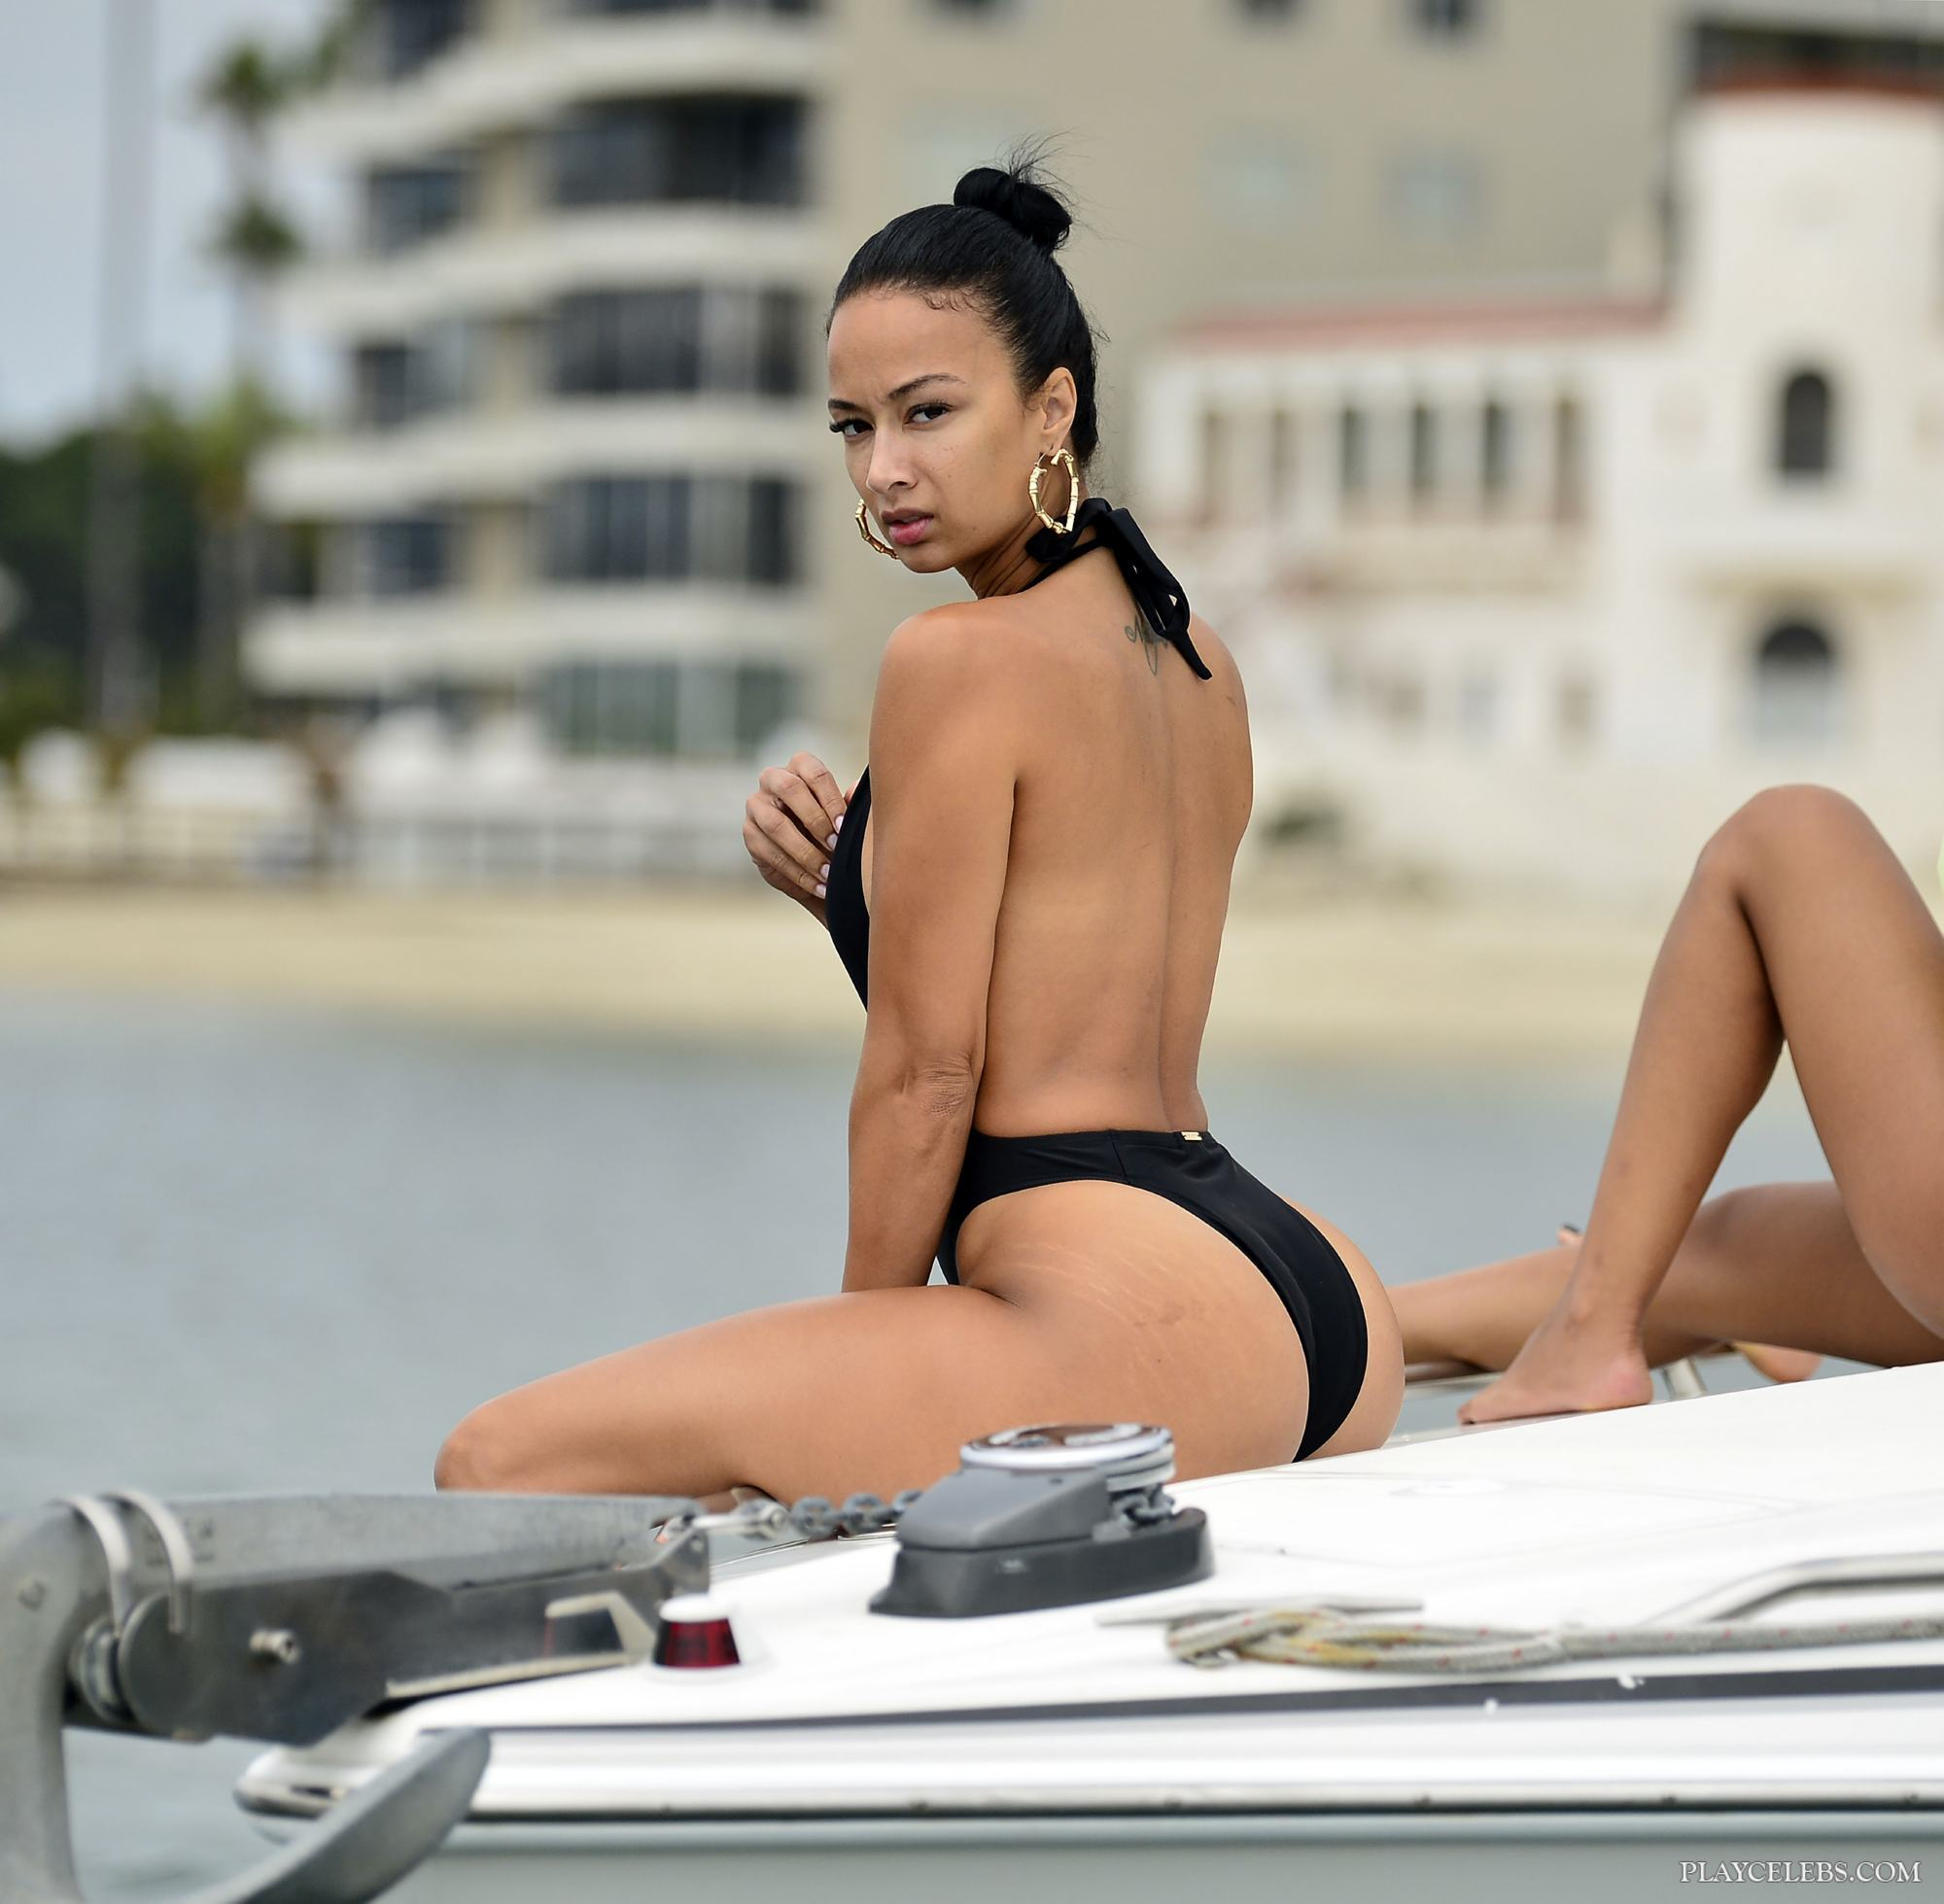 Draya Michele Displays Gorgeous Butt In Tight Swimsuit